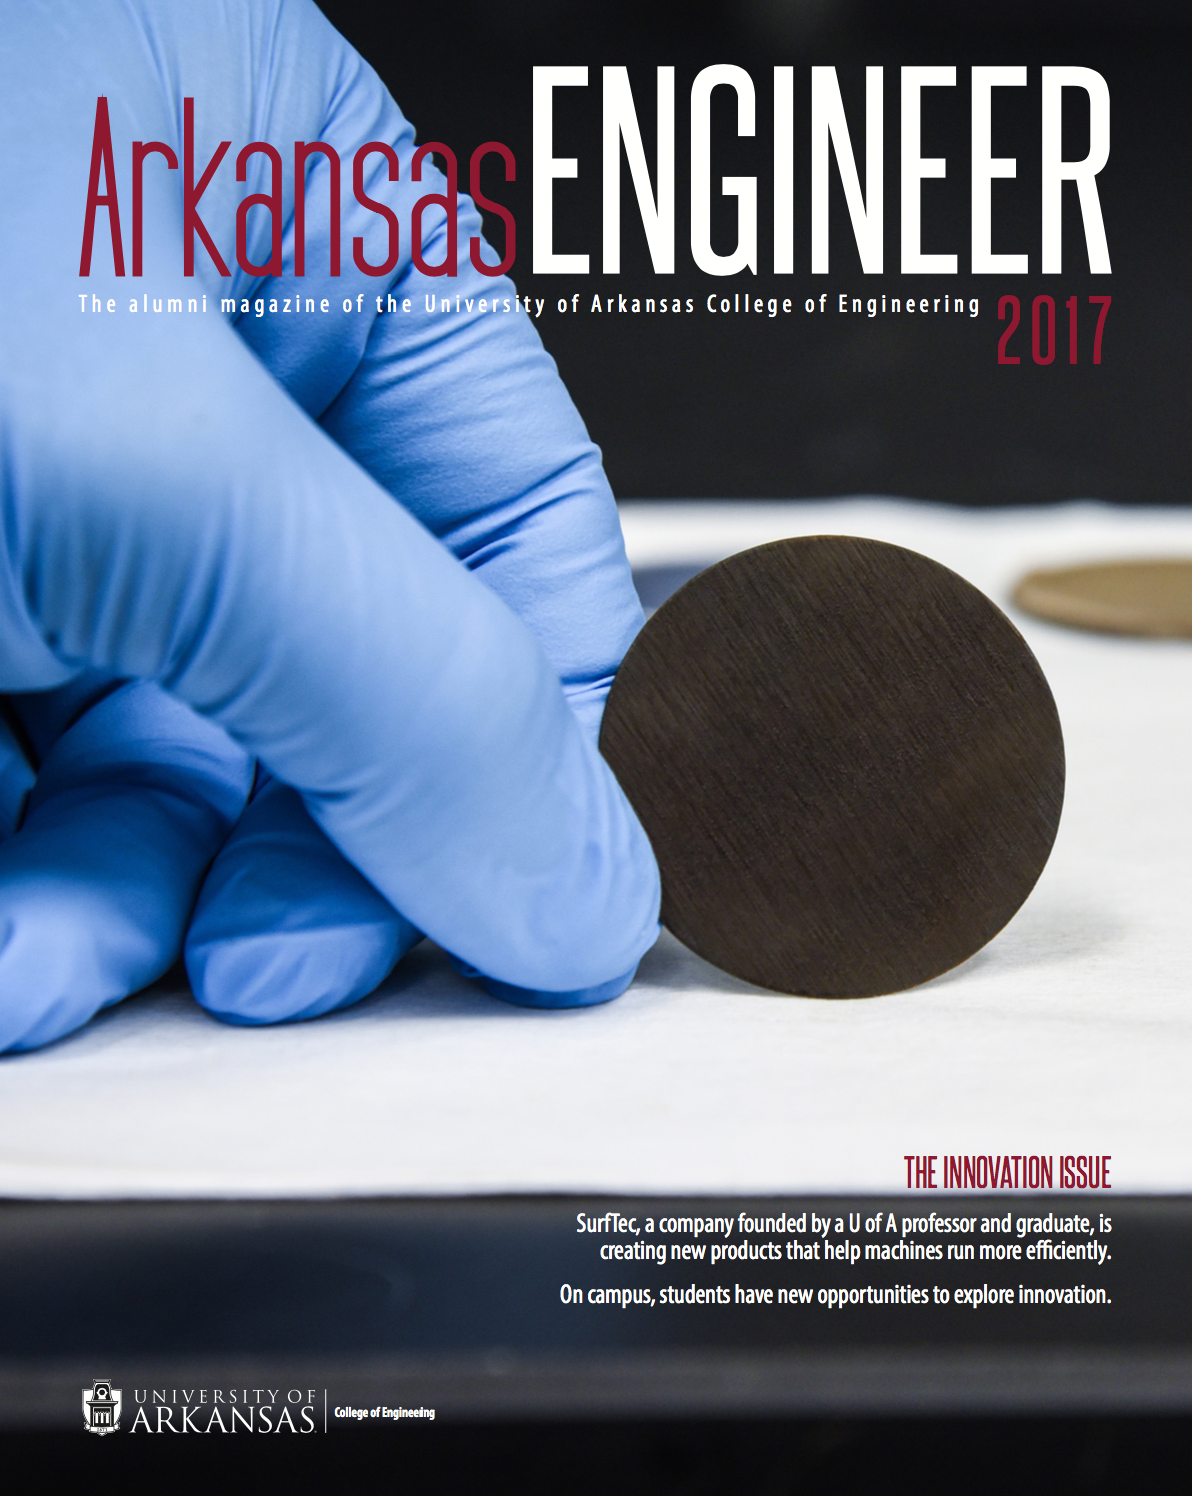 Arkansas Engineer 2017